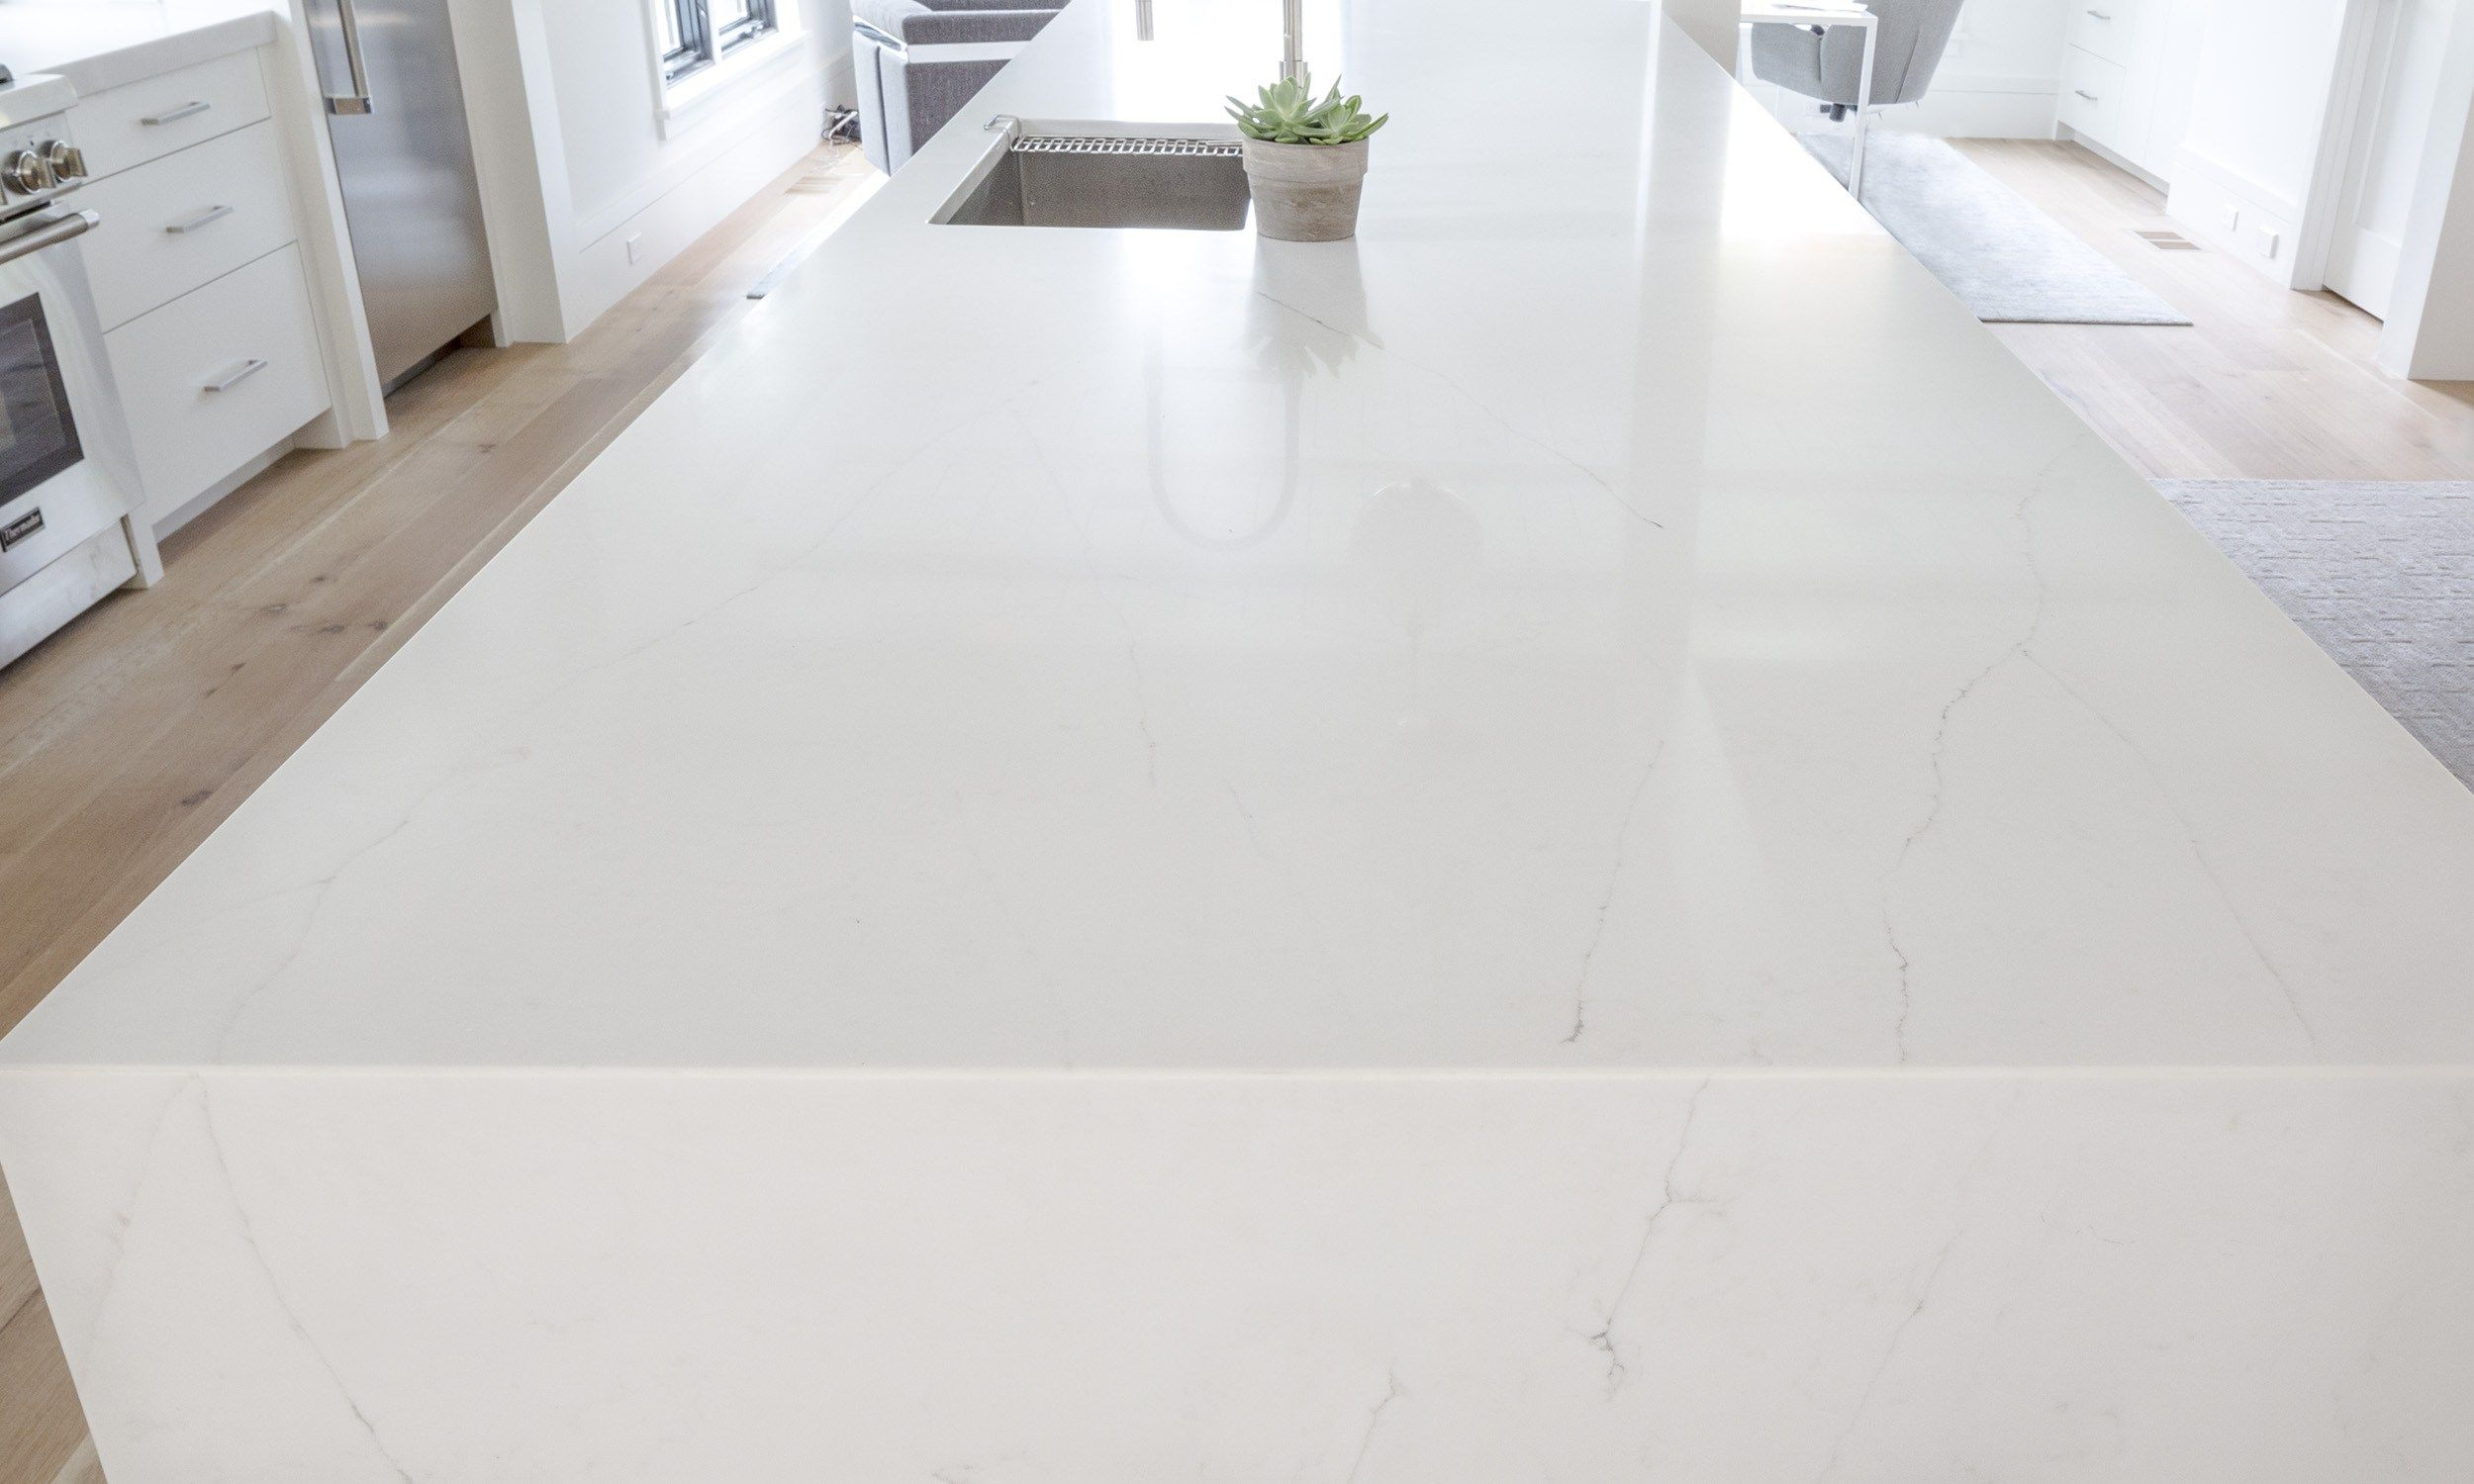 This Aurea Stone Lincoln Countertop Is Now In Stock At Dwyer